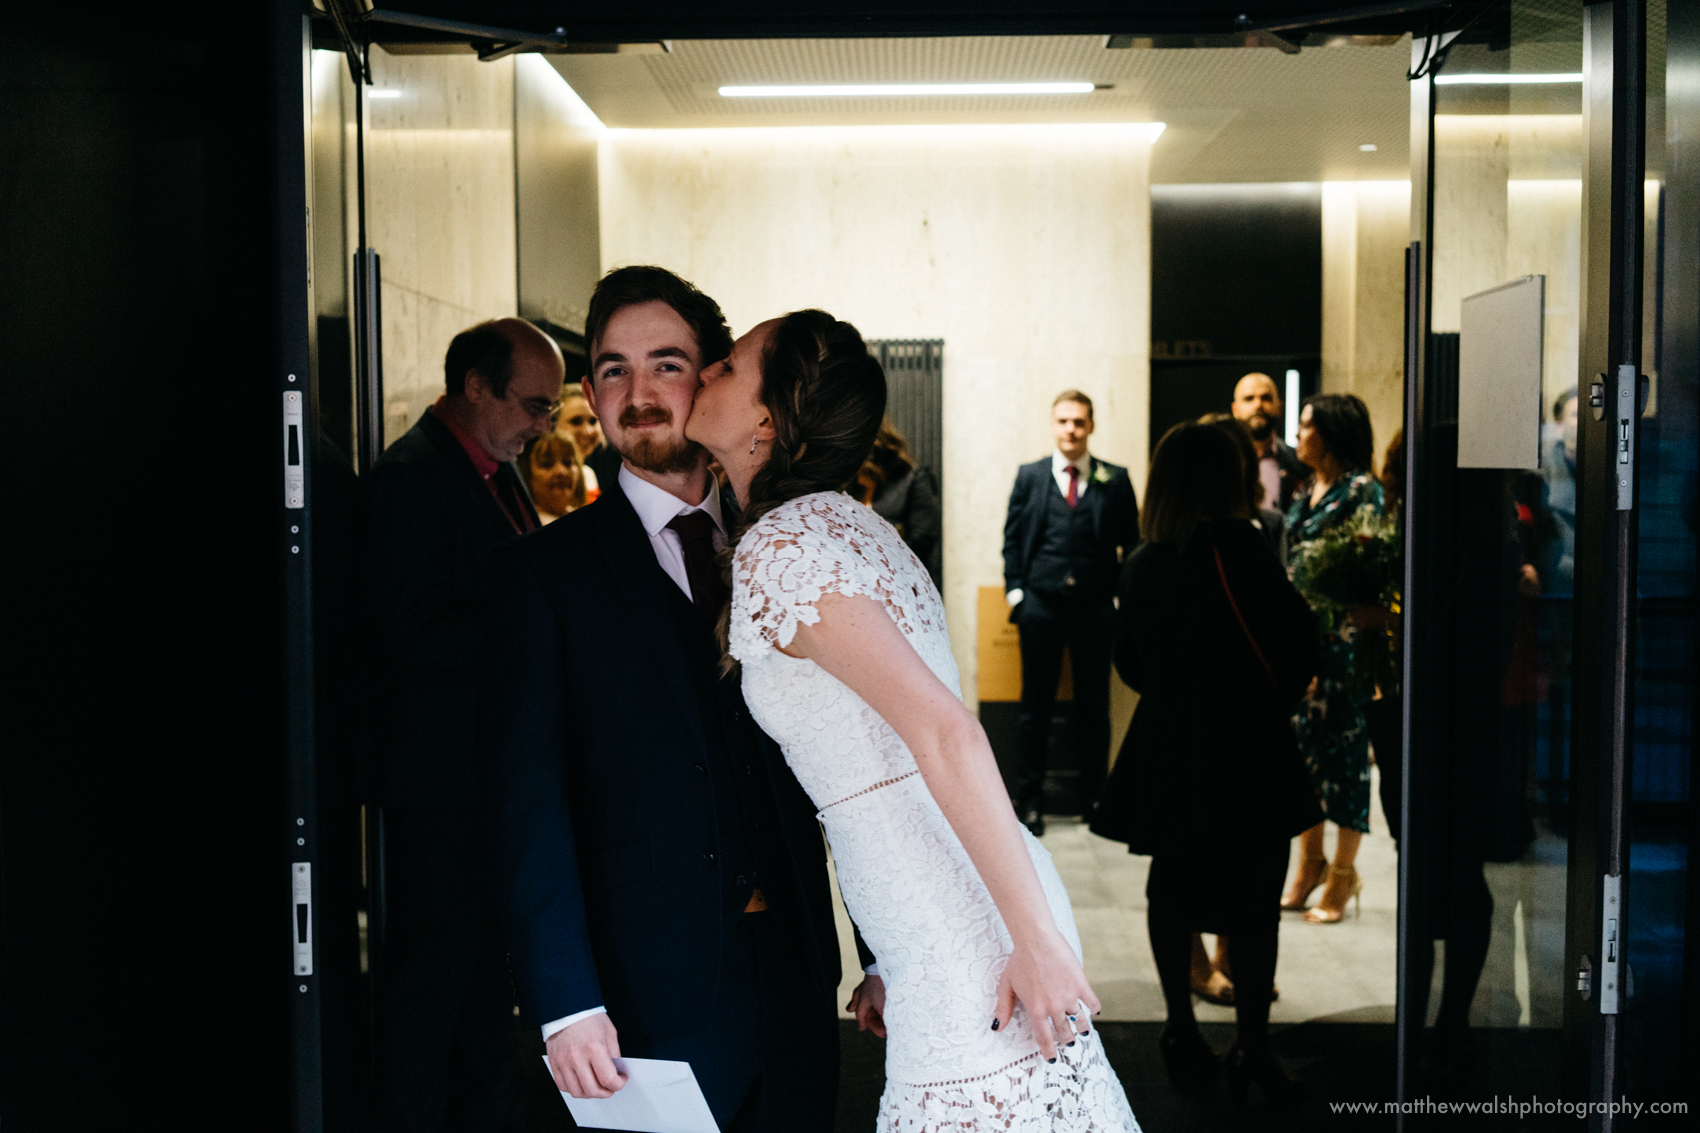 The bride gives her husband a quick kiss before the camera